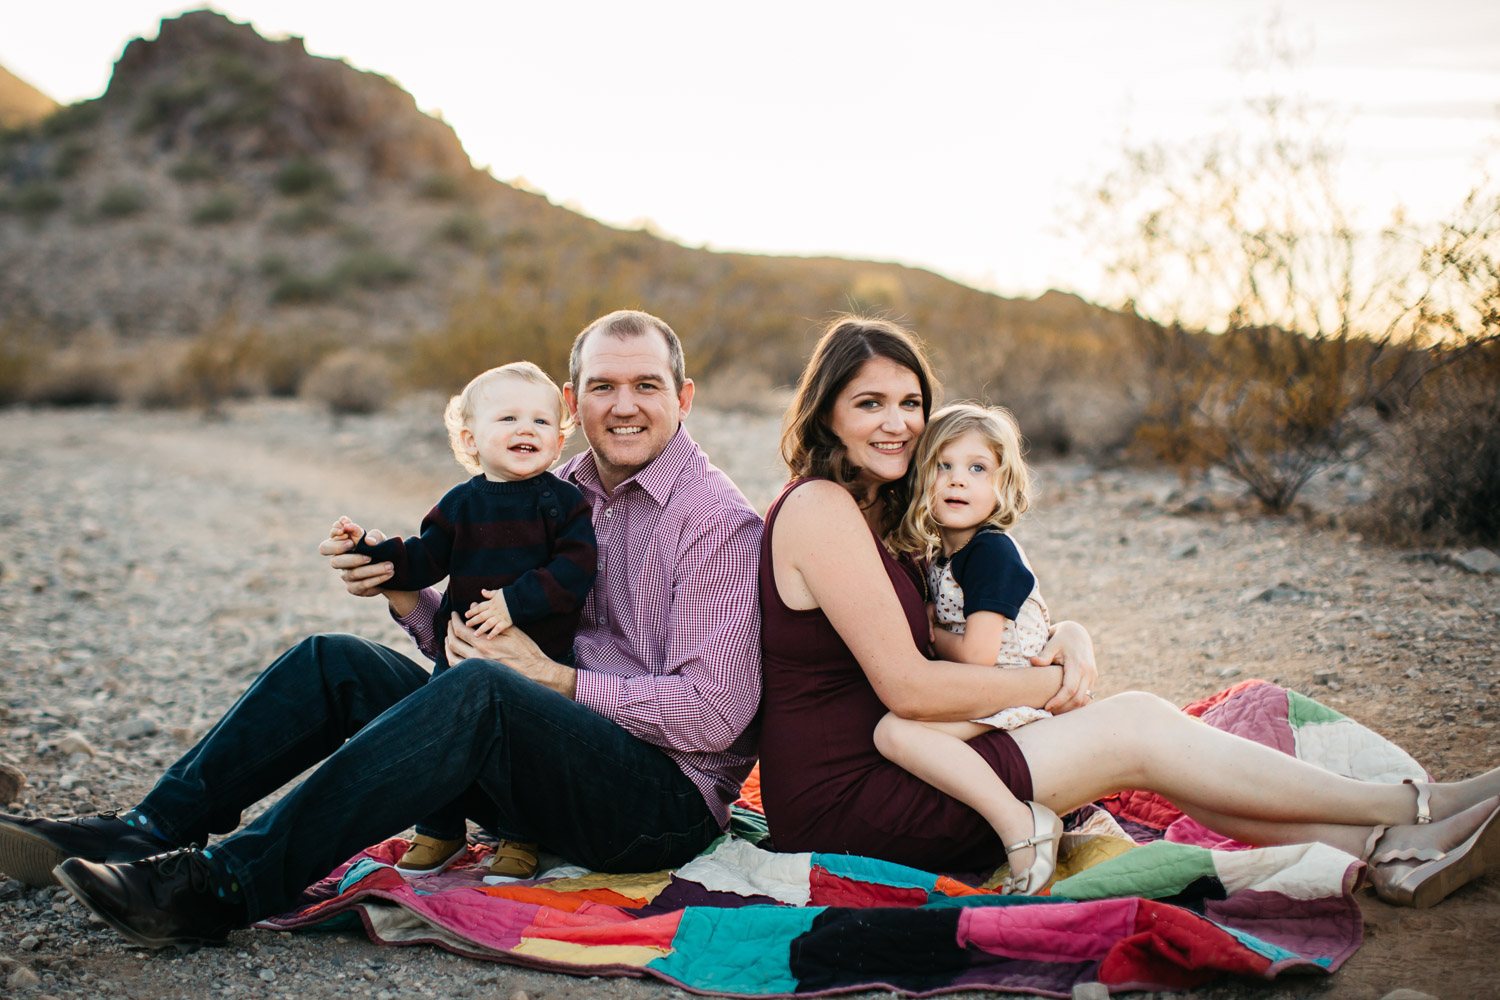 family young children happy smiling sunlight Phoenix Arizona family photography session